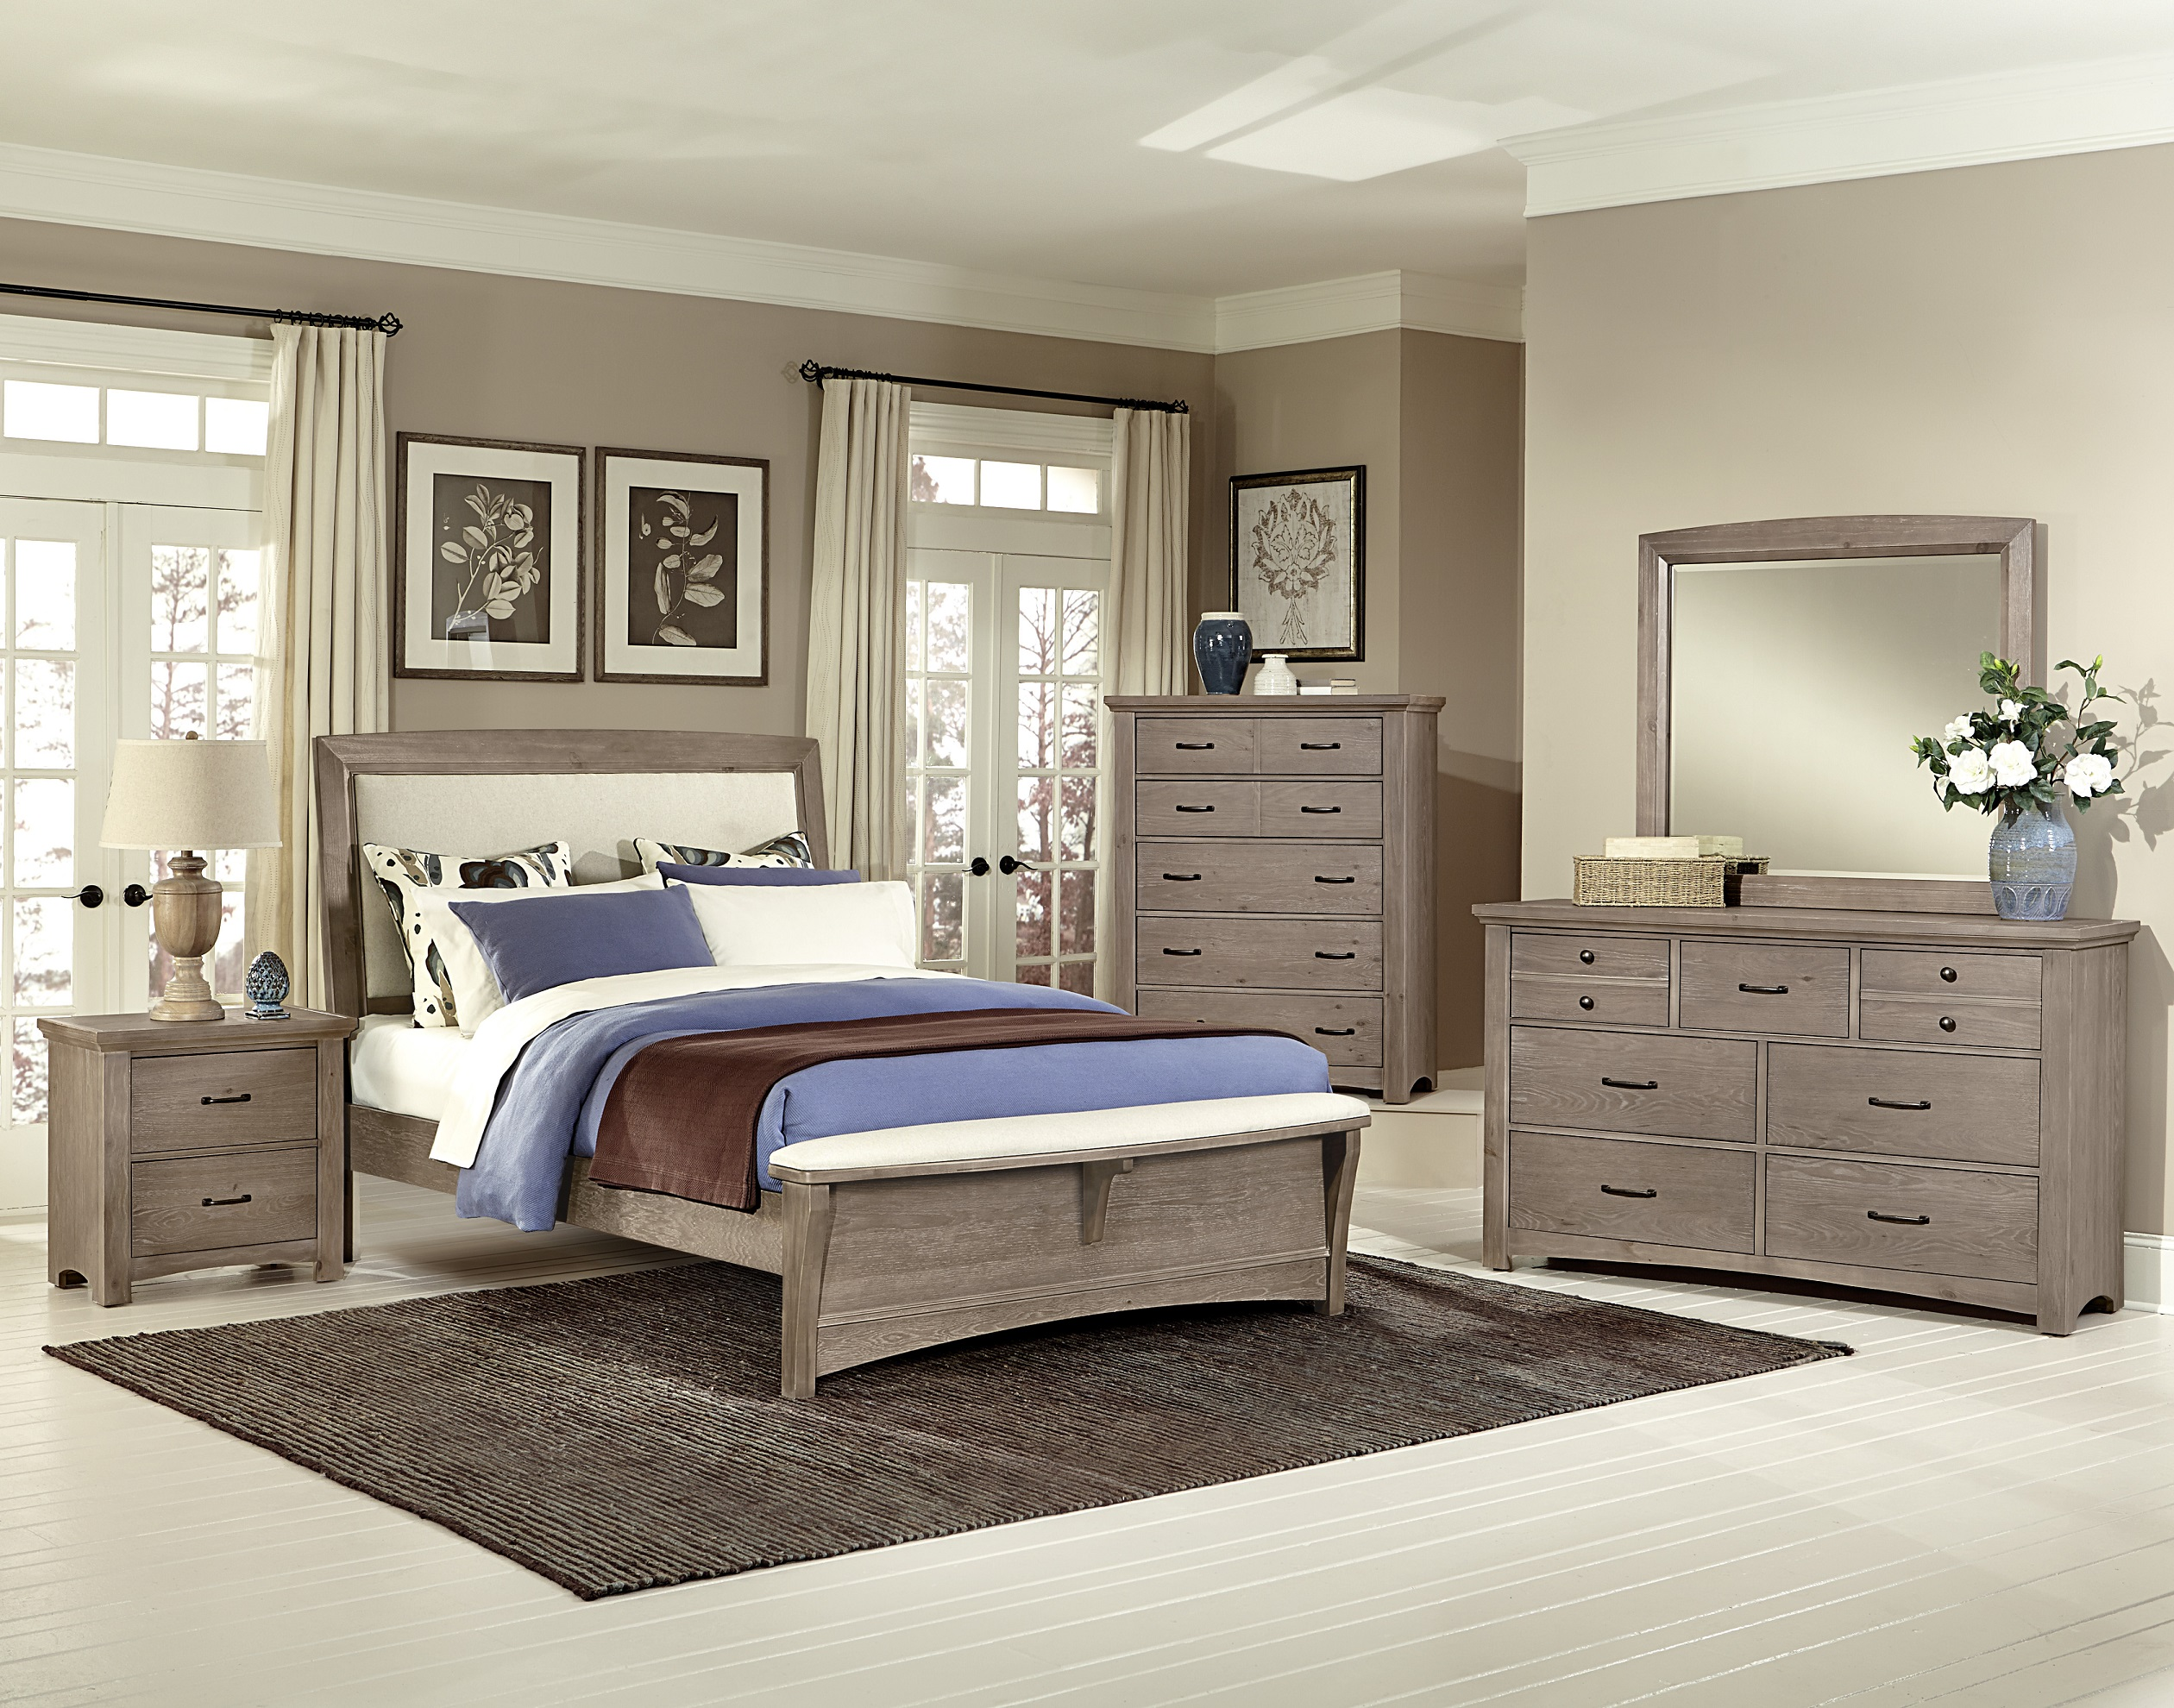 Transitions Driftwood Oak Queen Upholstered Bedroom Set By Vaughan